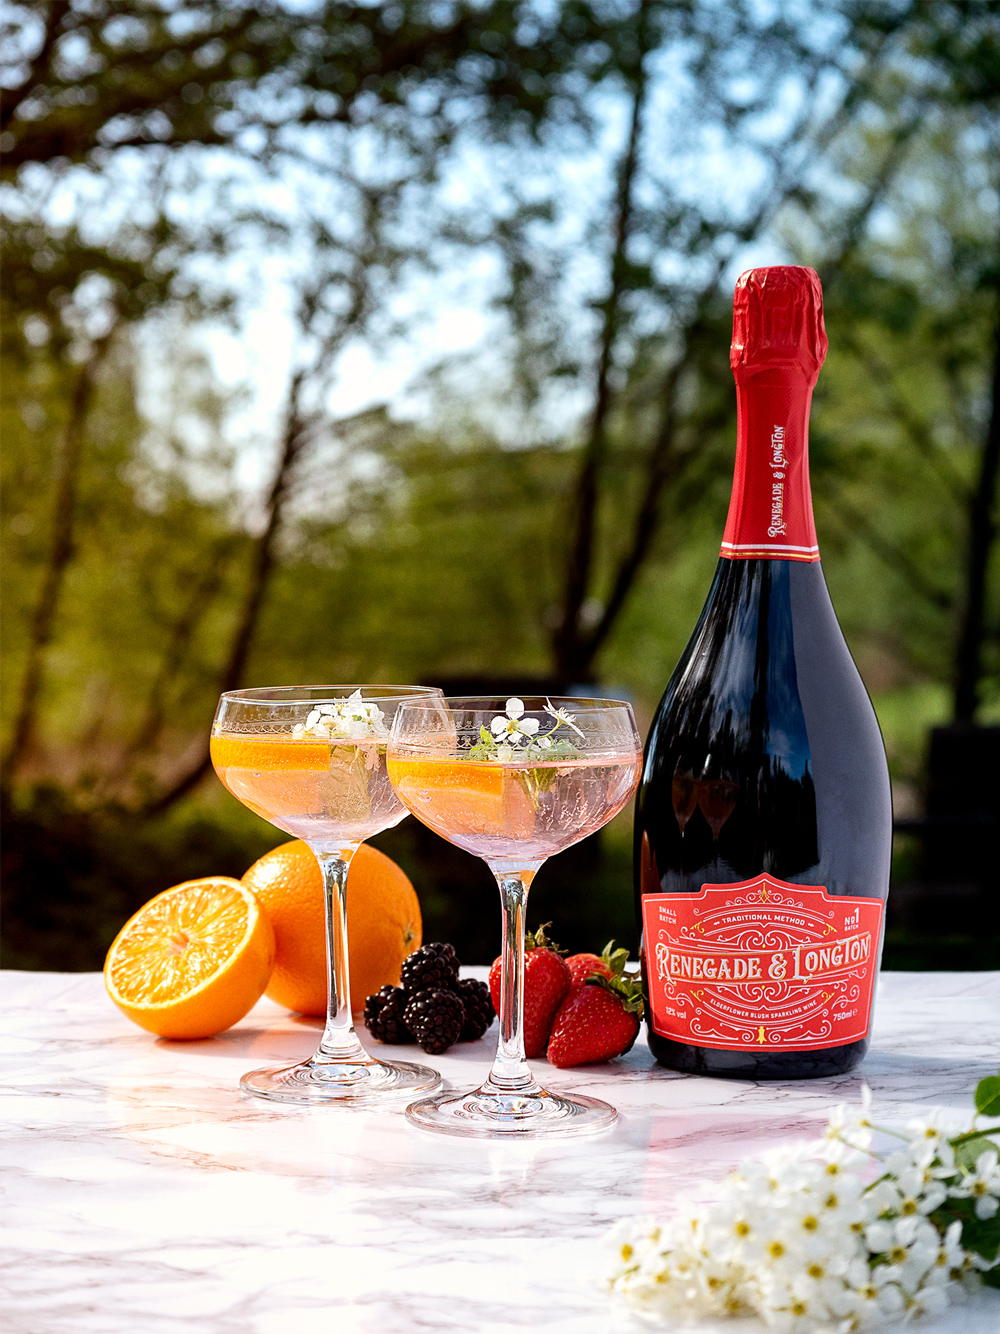 two glasses of rhubarb wine Aperol spritz and a bottle of Renegade and Longton blush elderflower sparkling wine